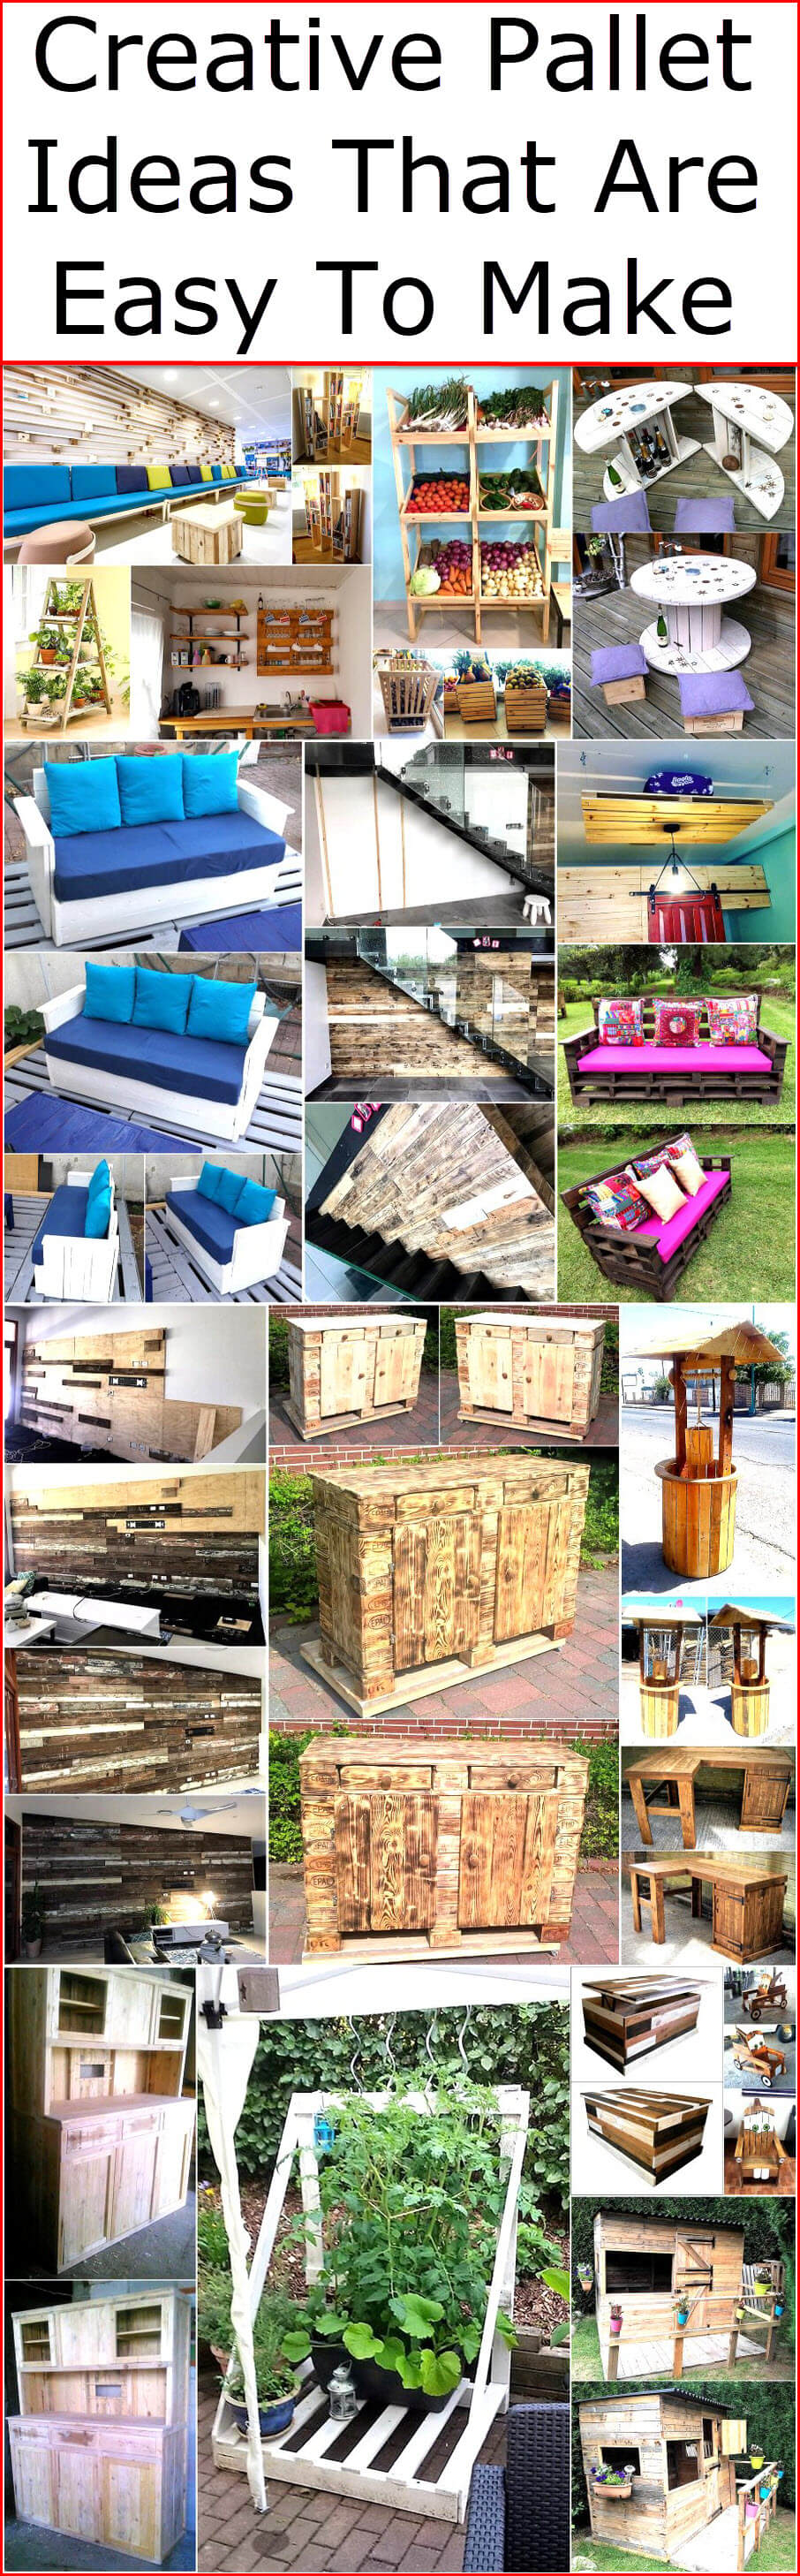 Creative Pallet Ideas That Are Easy To Make